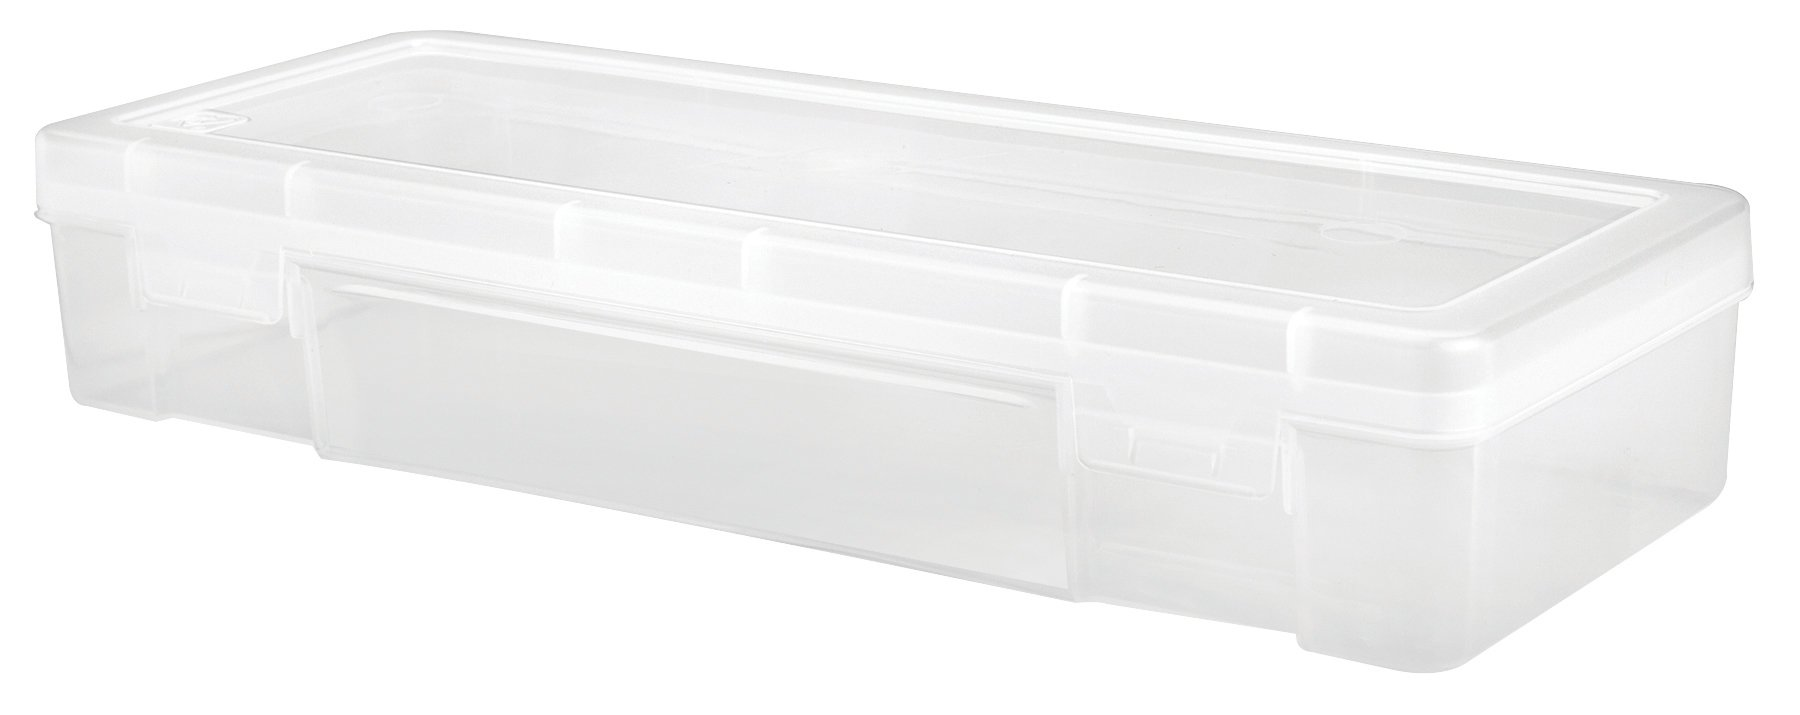 IRIS 585172 Modular Supply Case, PVC-Free ,Large,10 Pack, Clear by IRIS USA, Inc.